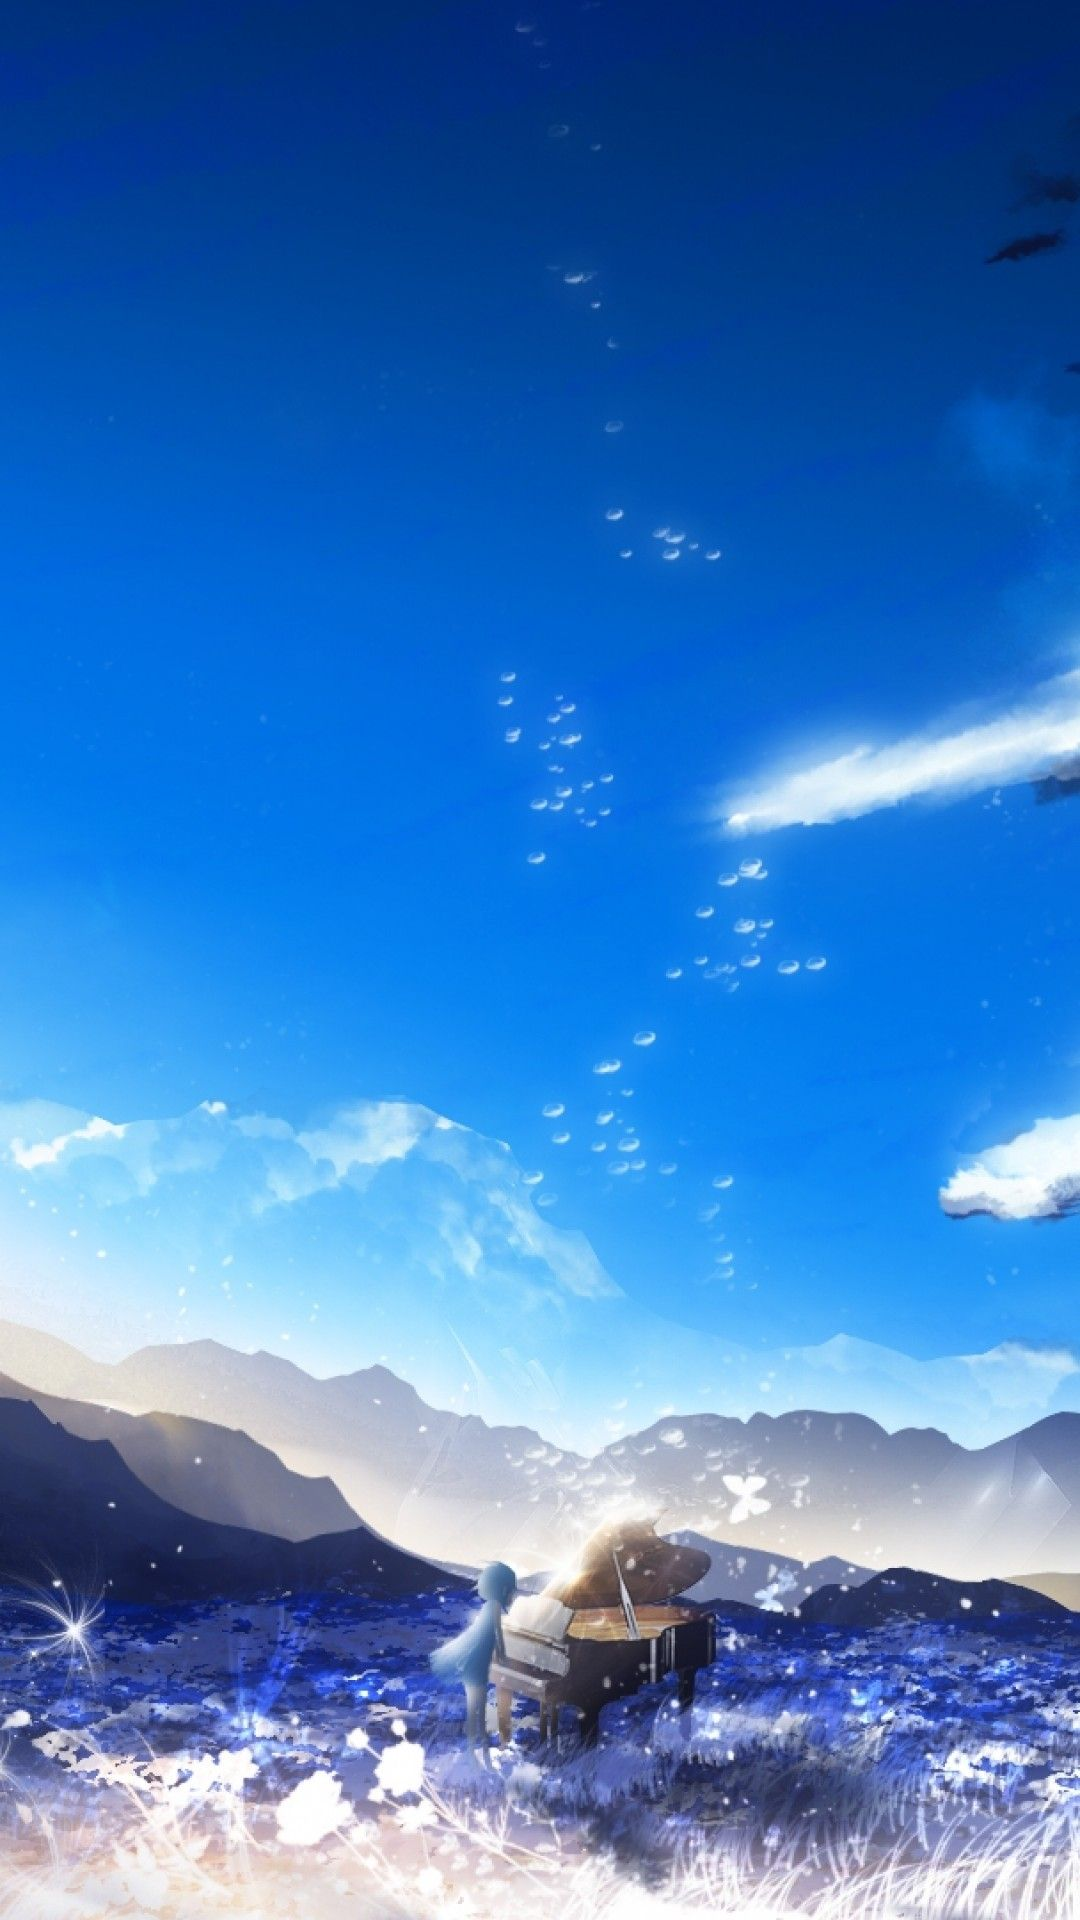 Anime Scenery iPhone Wallpapers - Top Free Anime Scenery ...